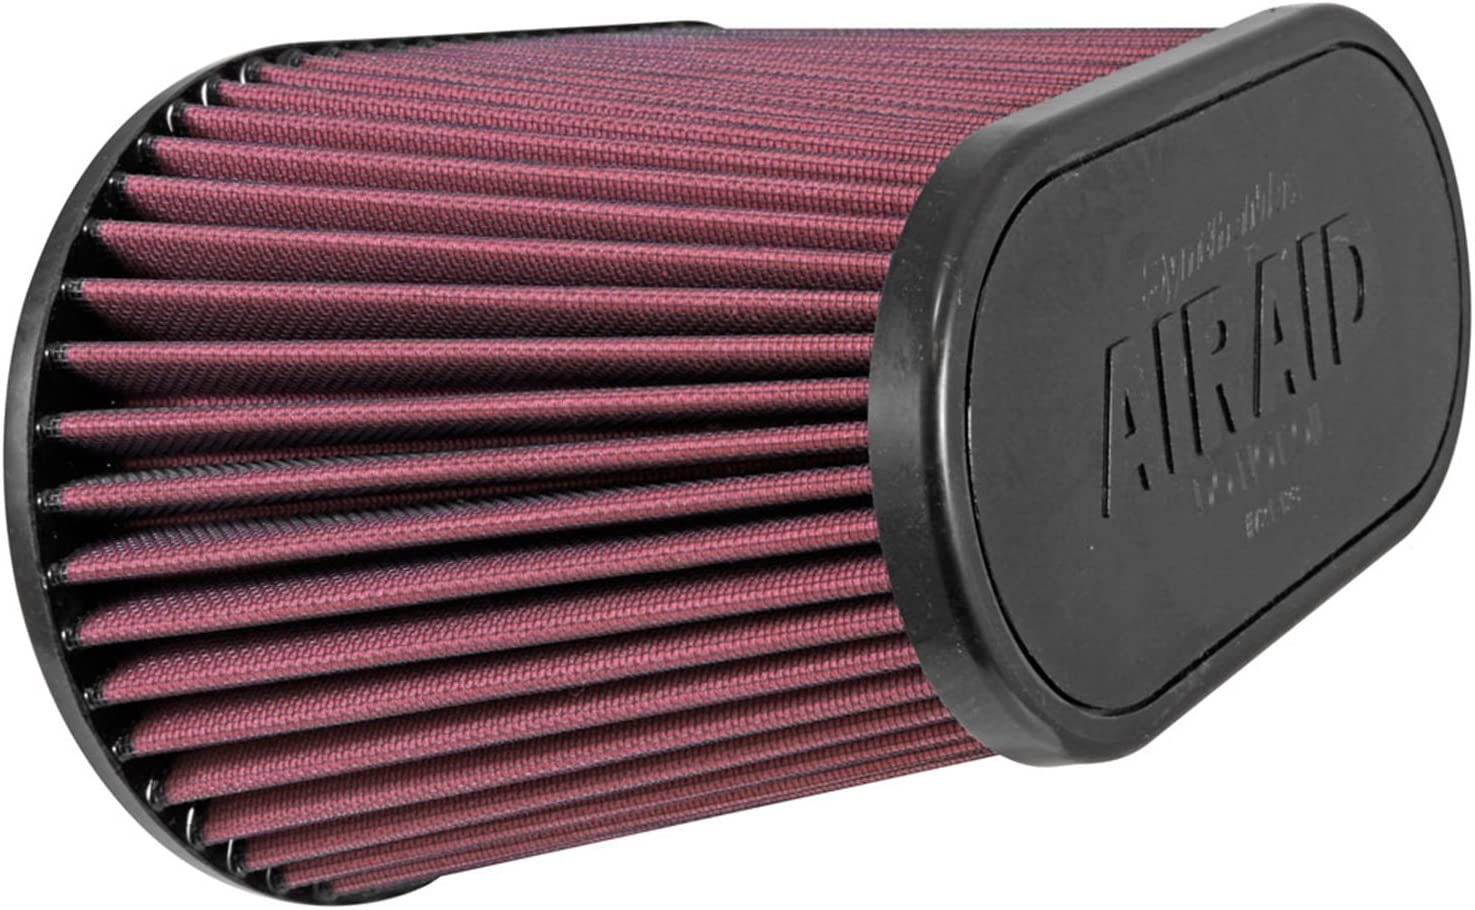 Airaid (AIR-720-128) Universal Clamp-On Air Filter: Oval Tapered; 4.5 Inch (114 mm) Flange ID; 7.375 Inch (187 mm) Height; 11.5 Inch x 7 Inch (292 mm x 178 mm) Base; 9 Inch x 4.5 Inch (229 mm x114 mm) Top